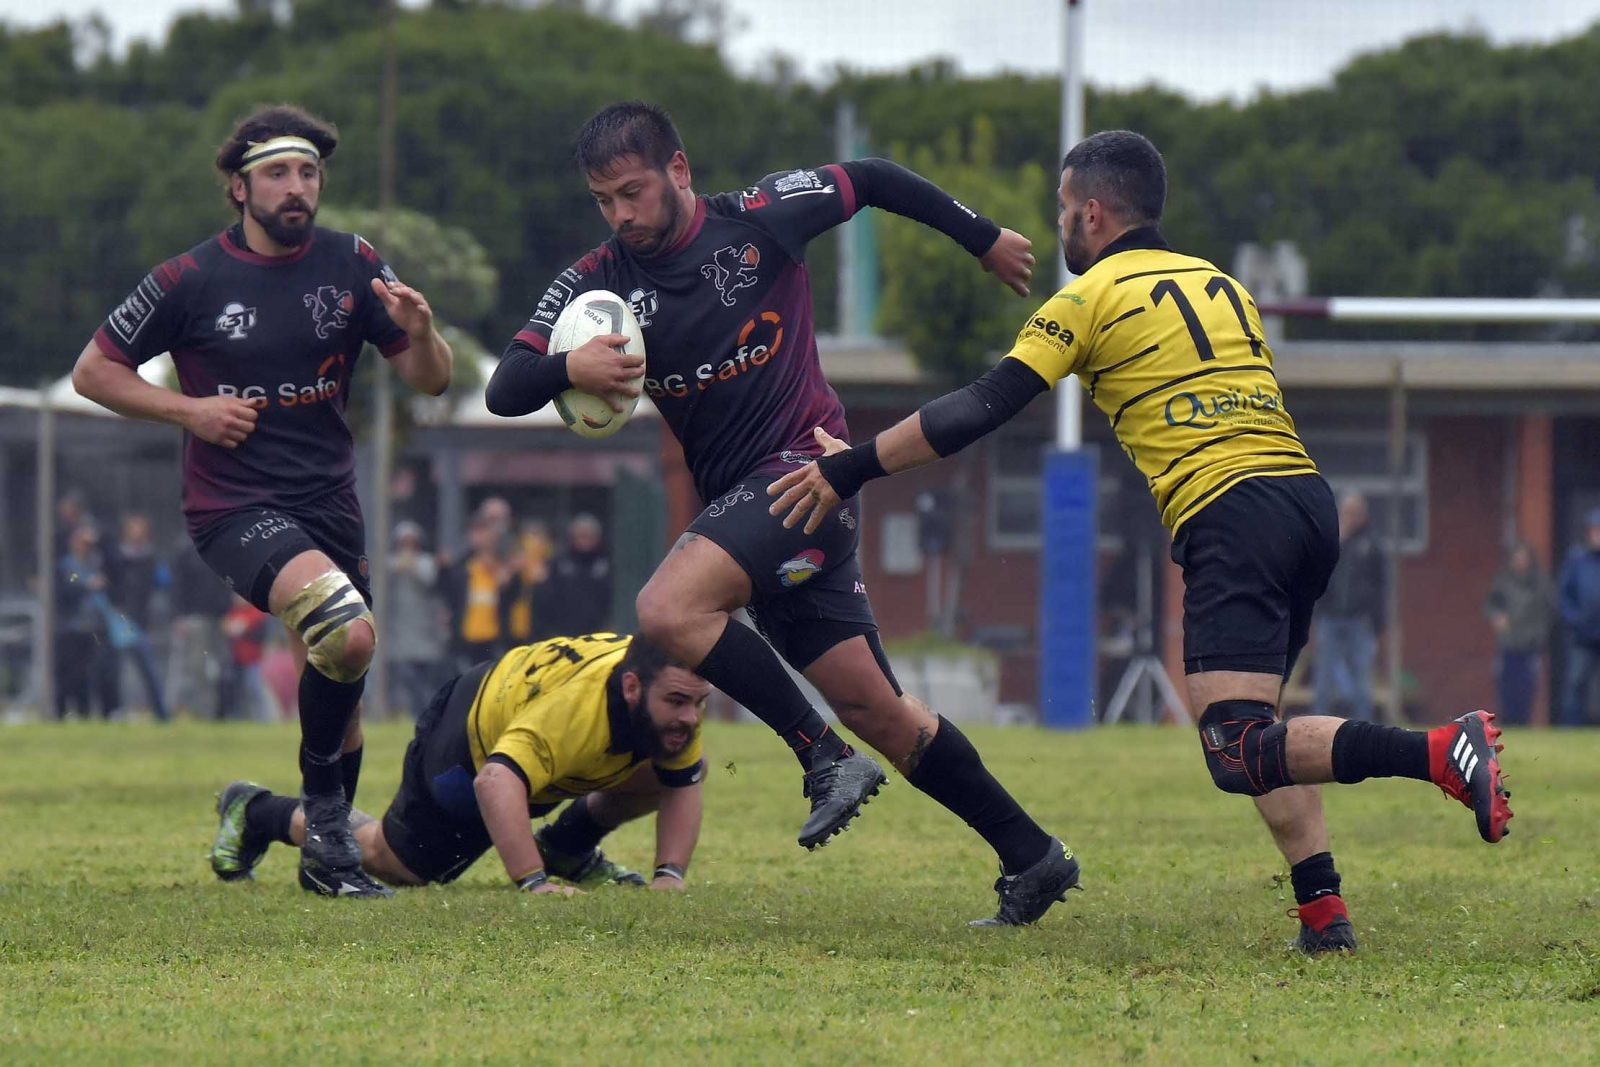 RUGBY LION'S PROMOZIONE SERIE B 05-05-2019